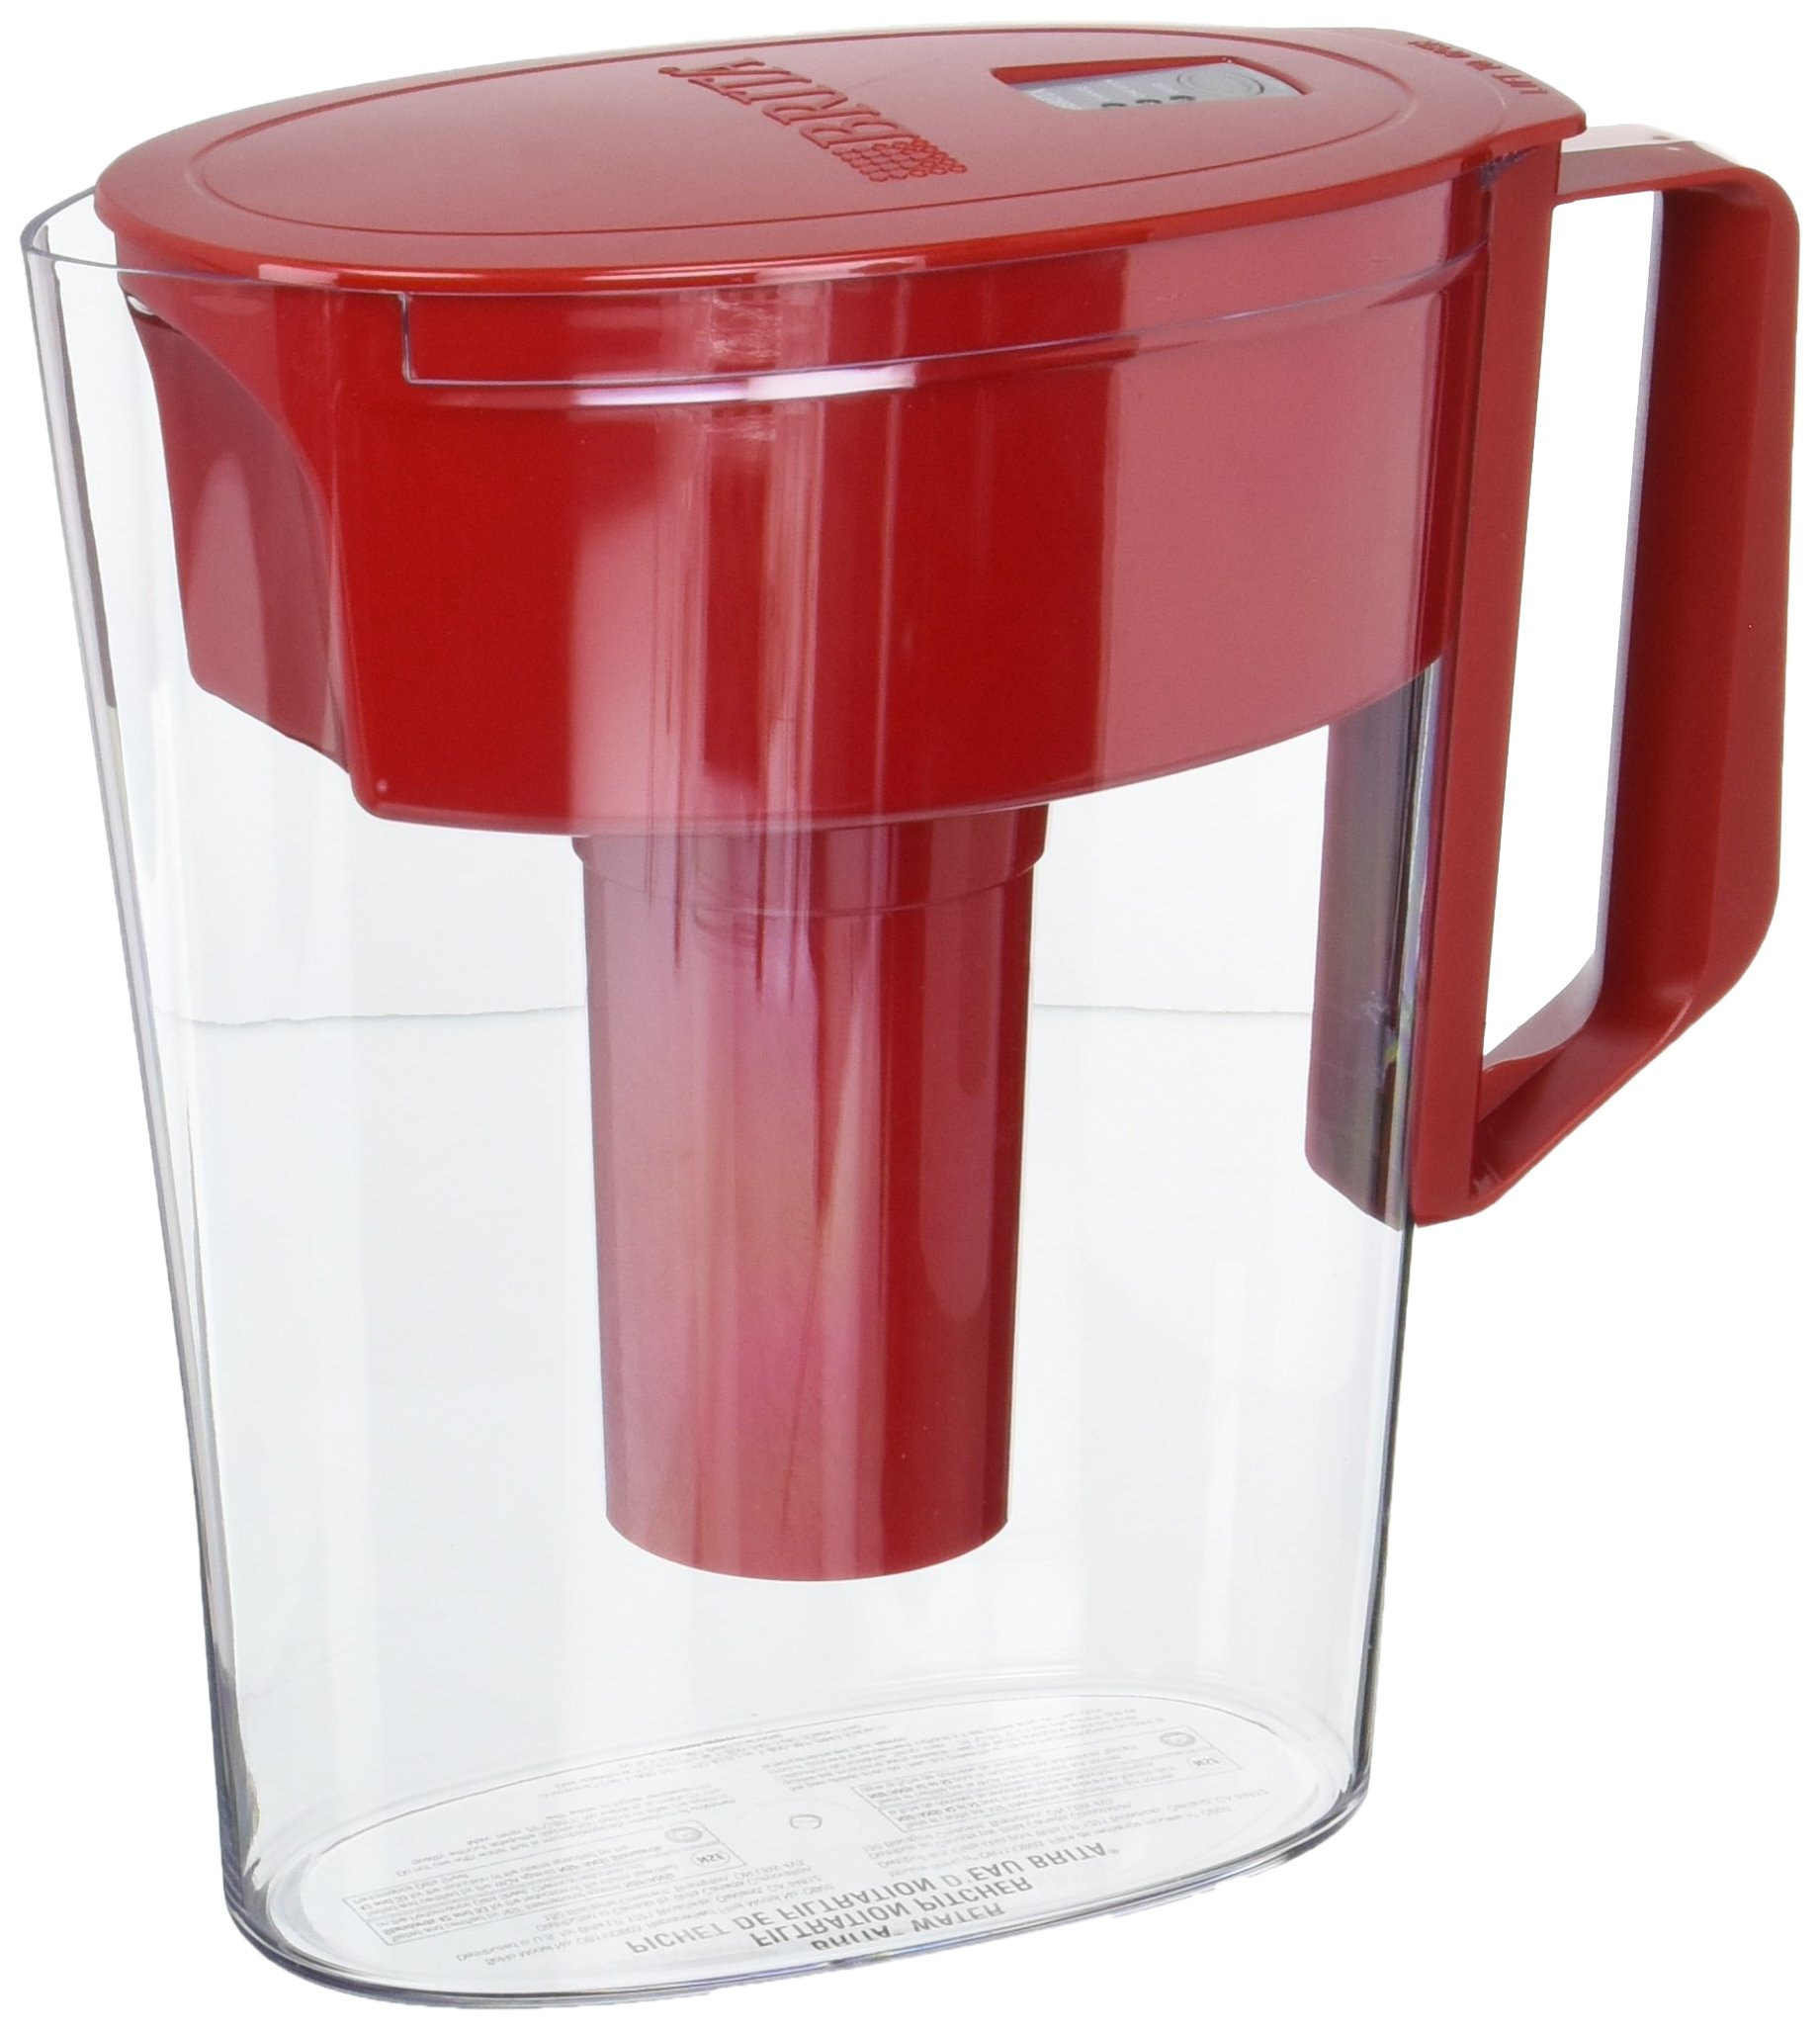 Clorox Sales CO BRITA DIV 212627 36090 Brita Red Soho Pitcher